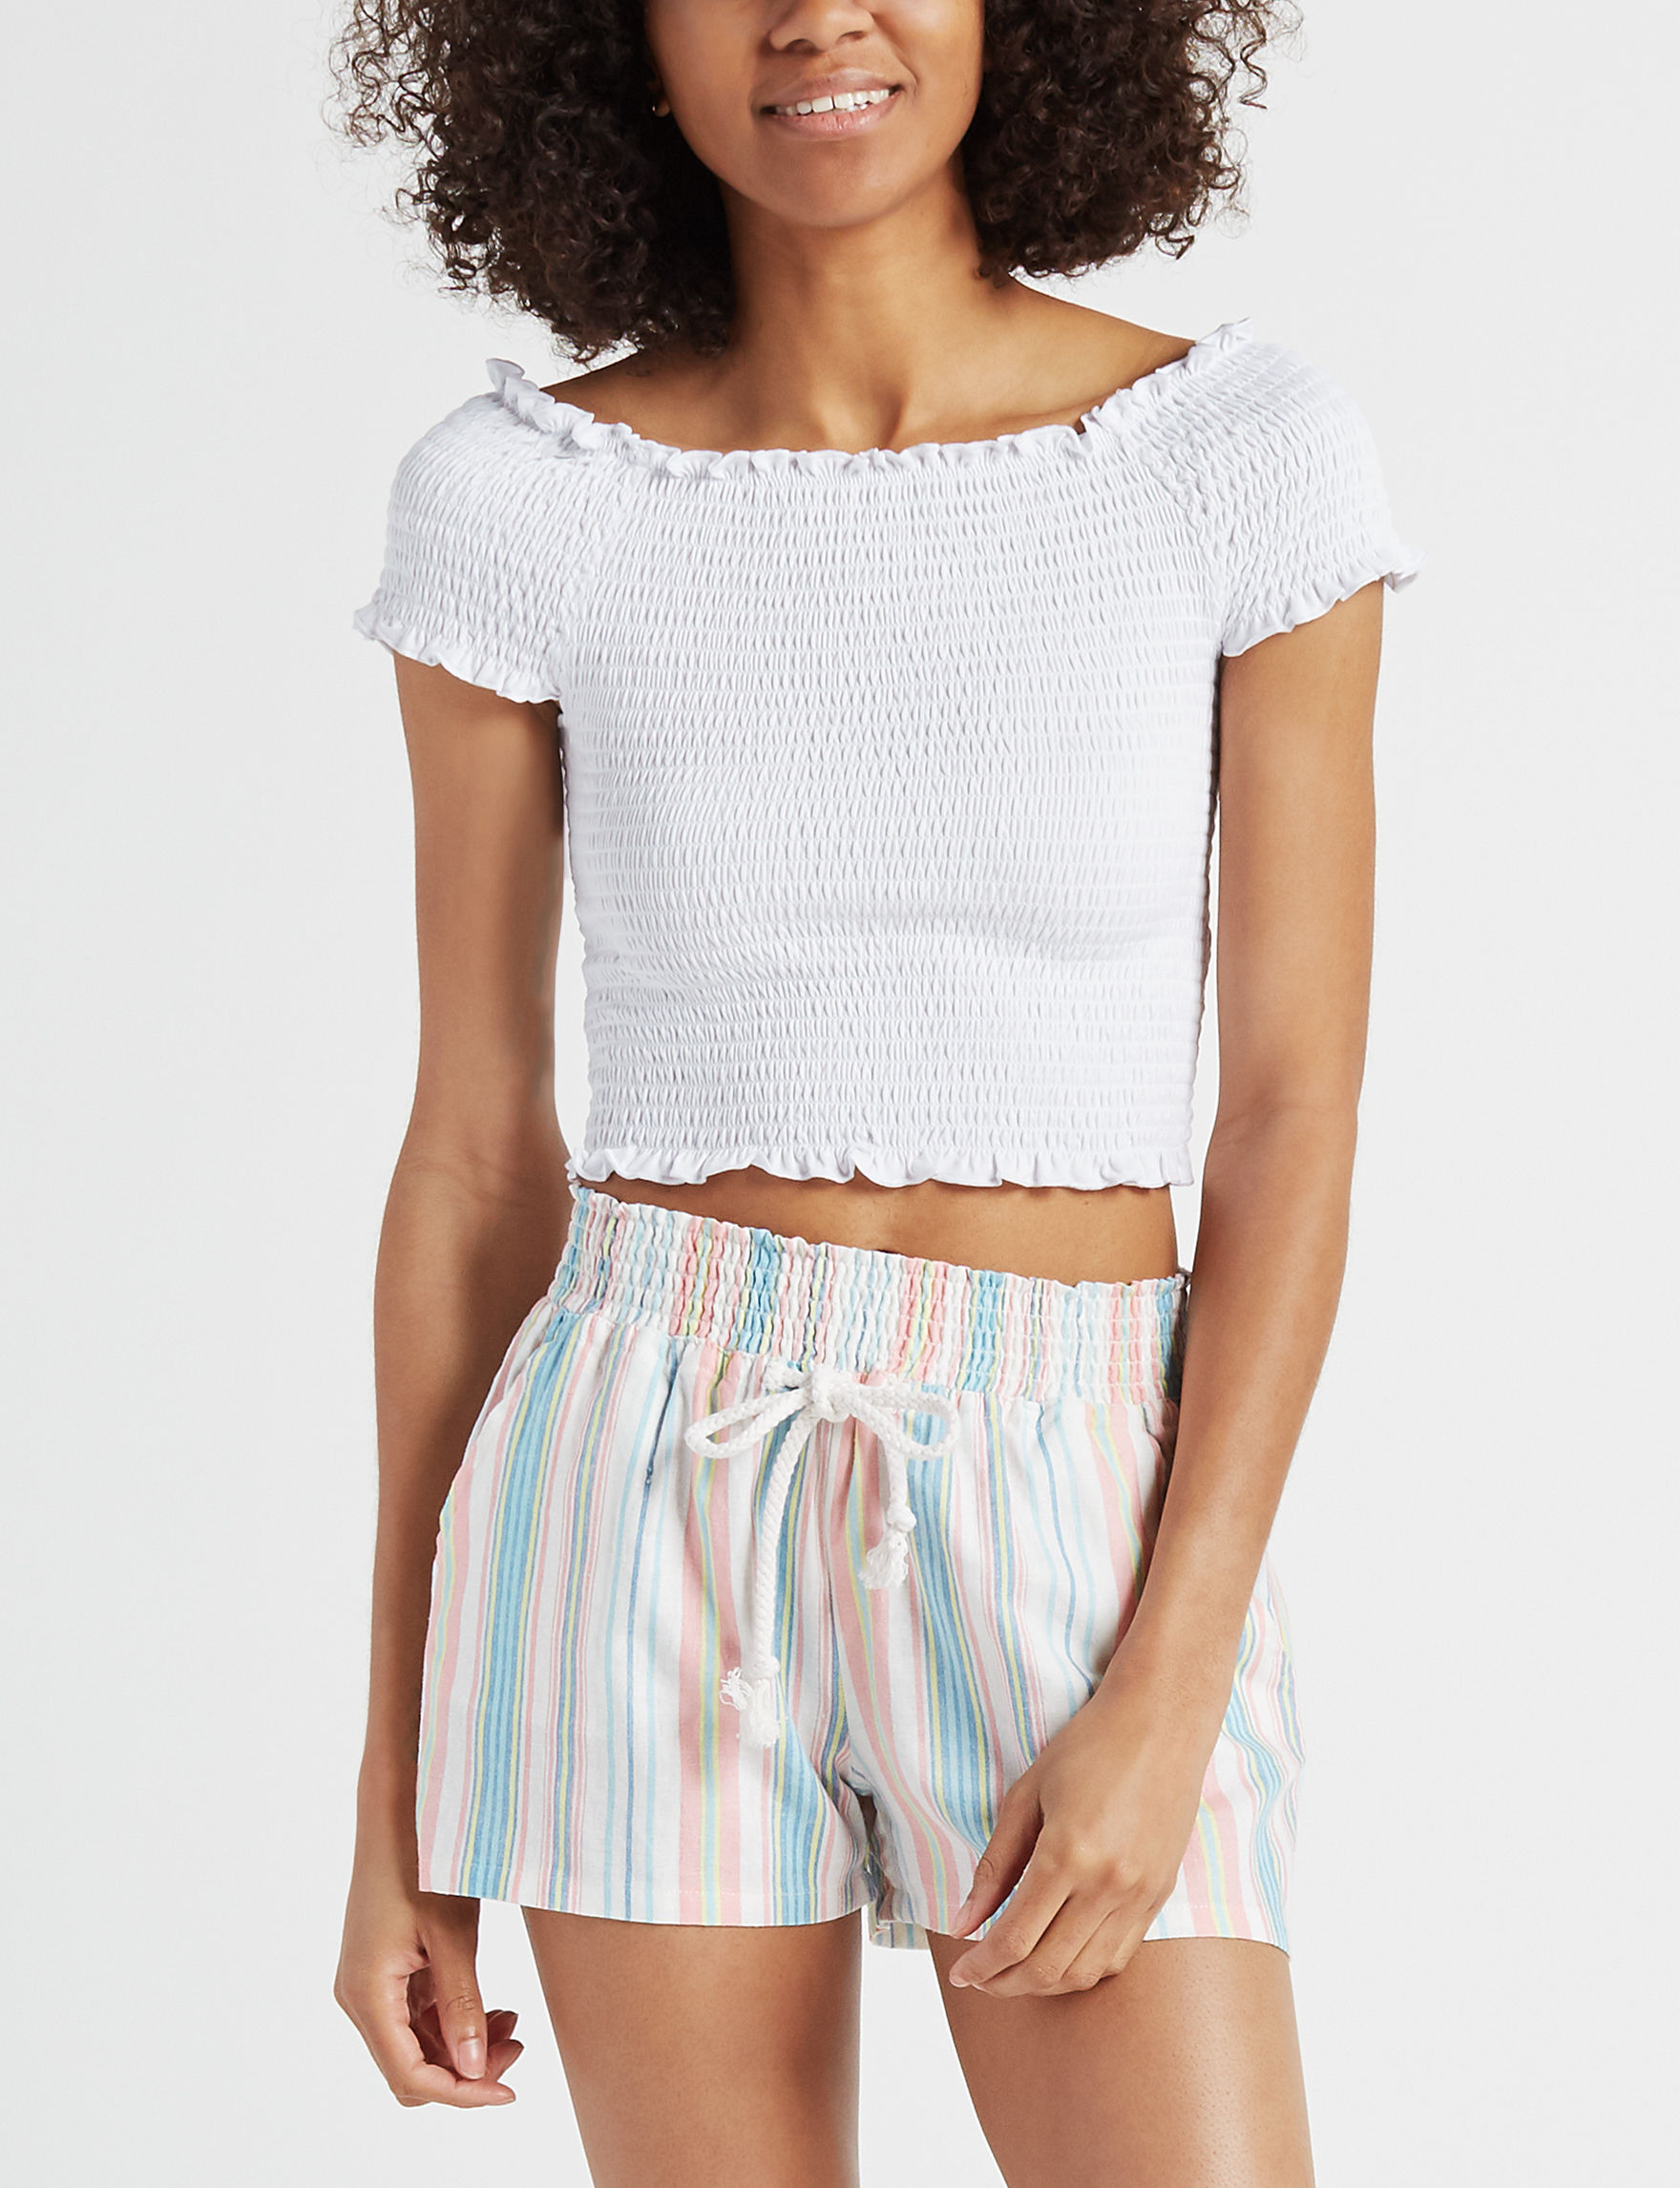 Wishful Park White Crop Tops Shirts & Blouses